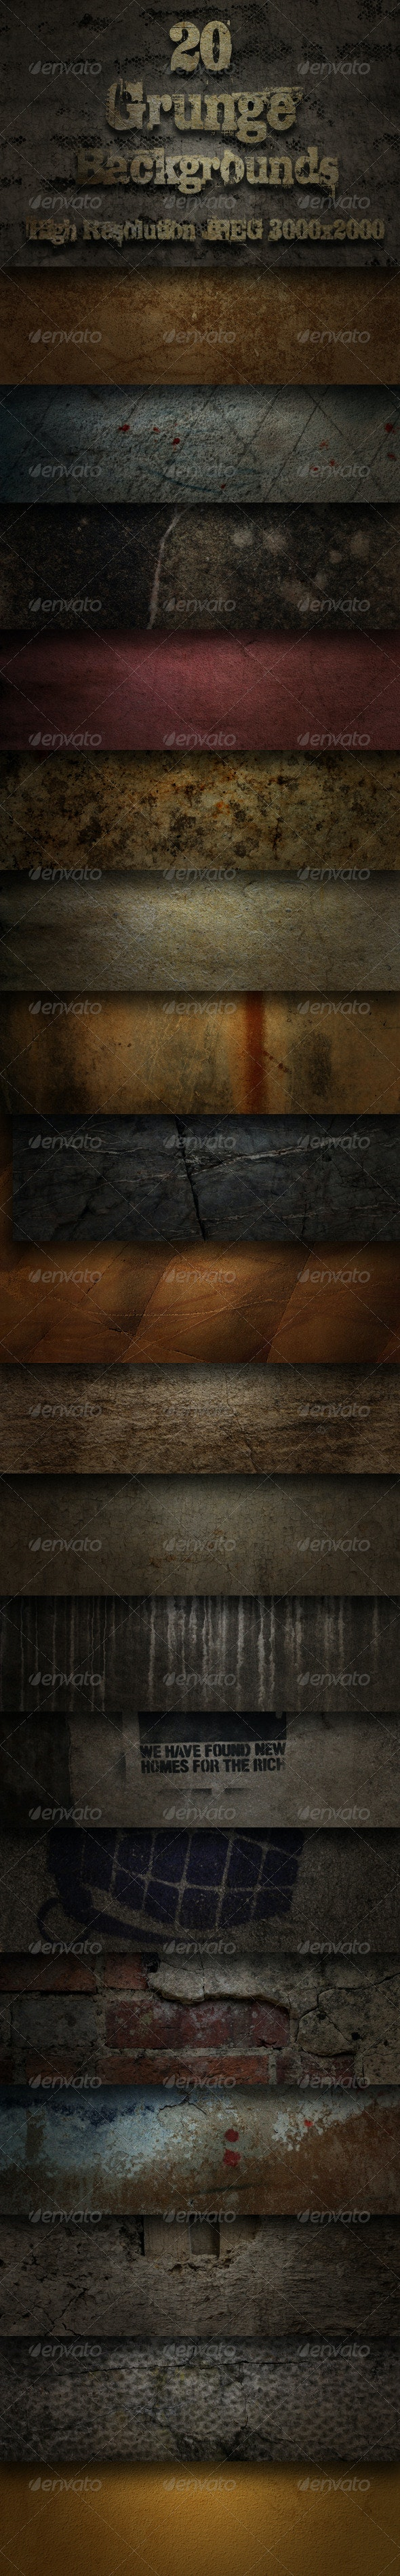 20 Grunge Backgrounds - Pack One  - Industrial / Grunge Textures